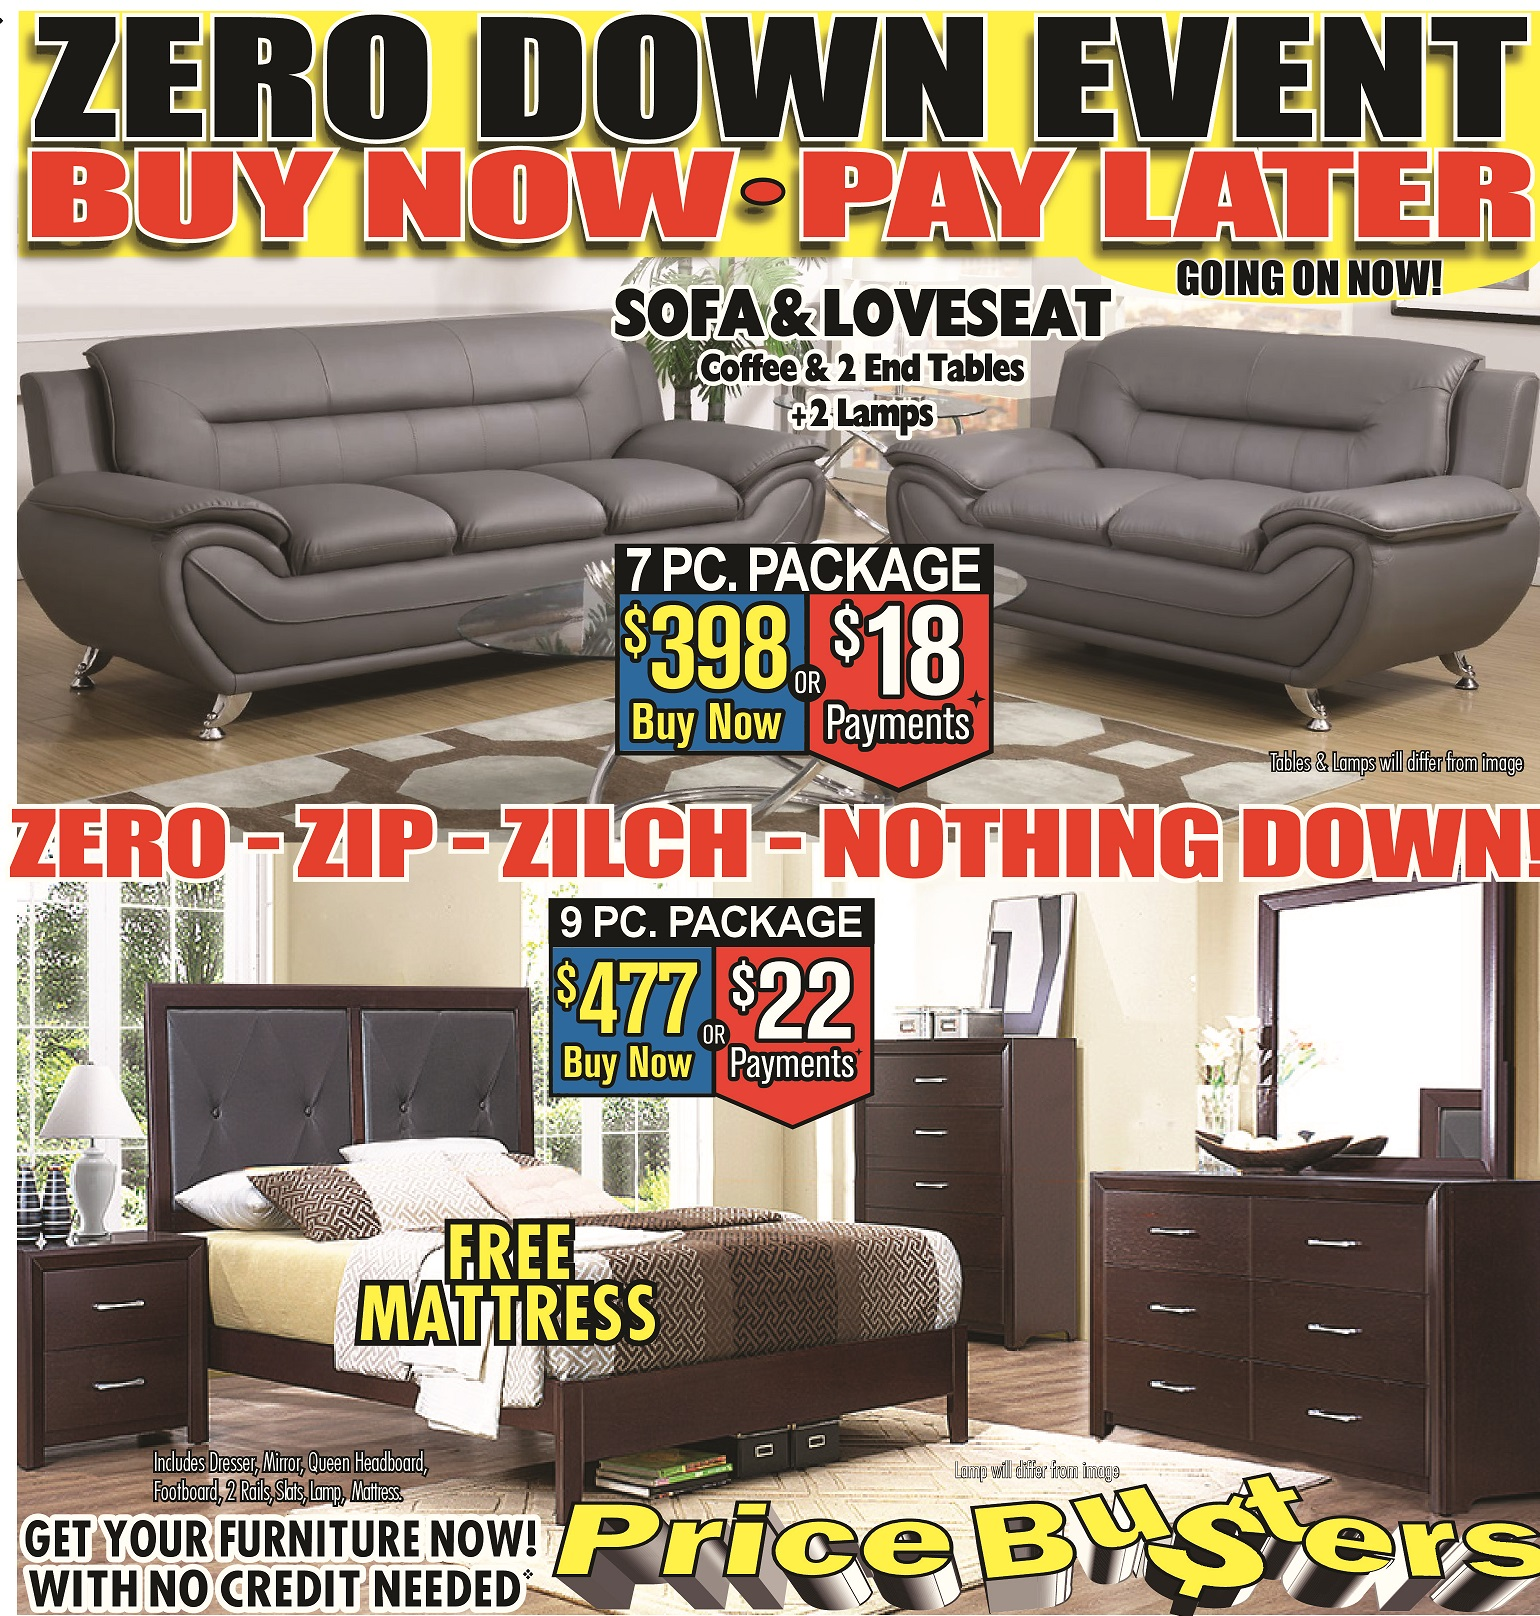 Best Priced Furniture Stores: Price Busters Discount Furniture, Rosedale Maryland (MD